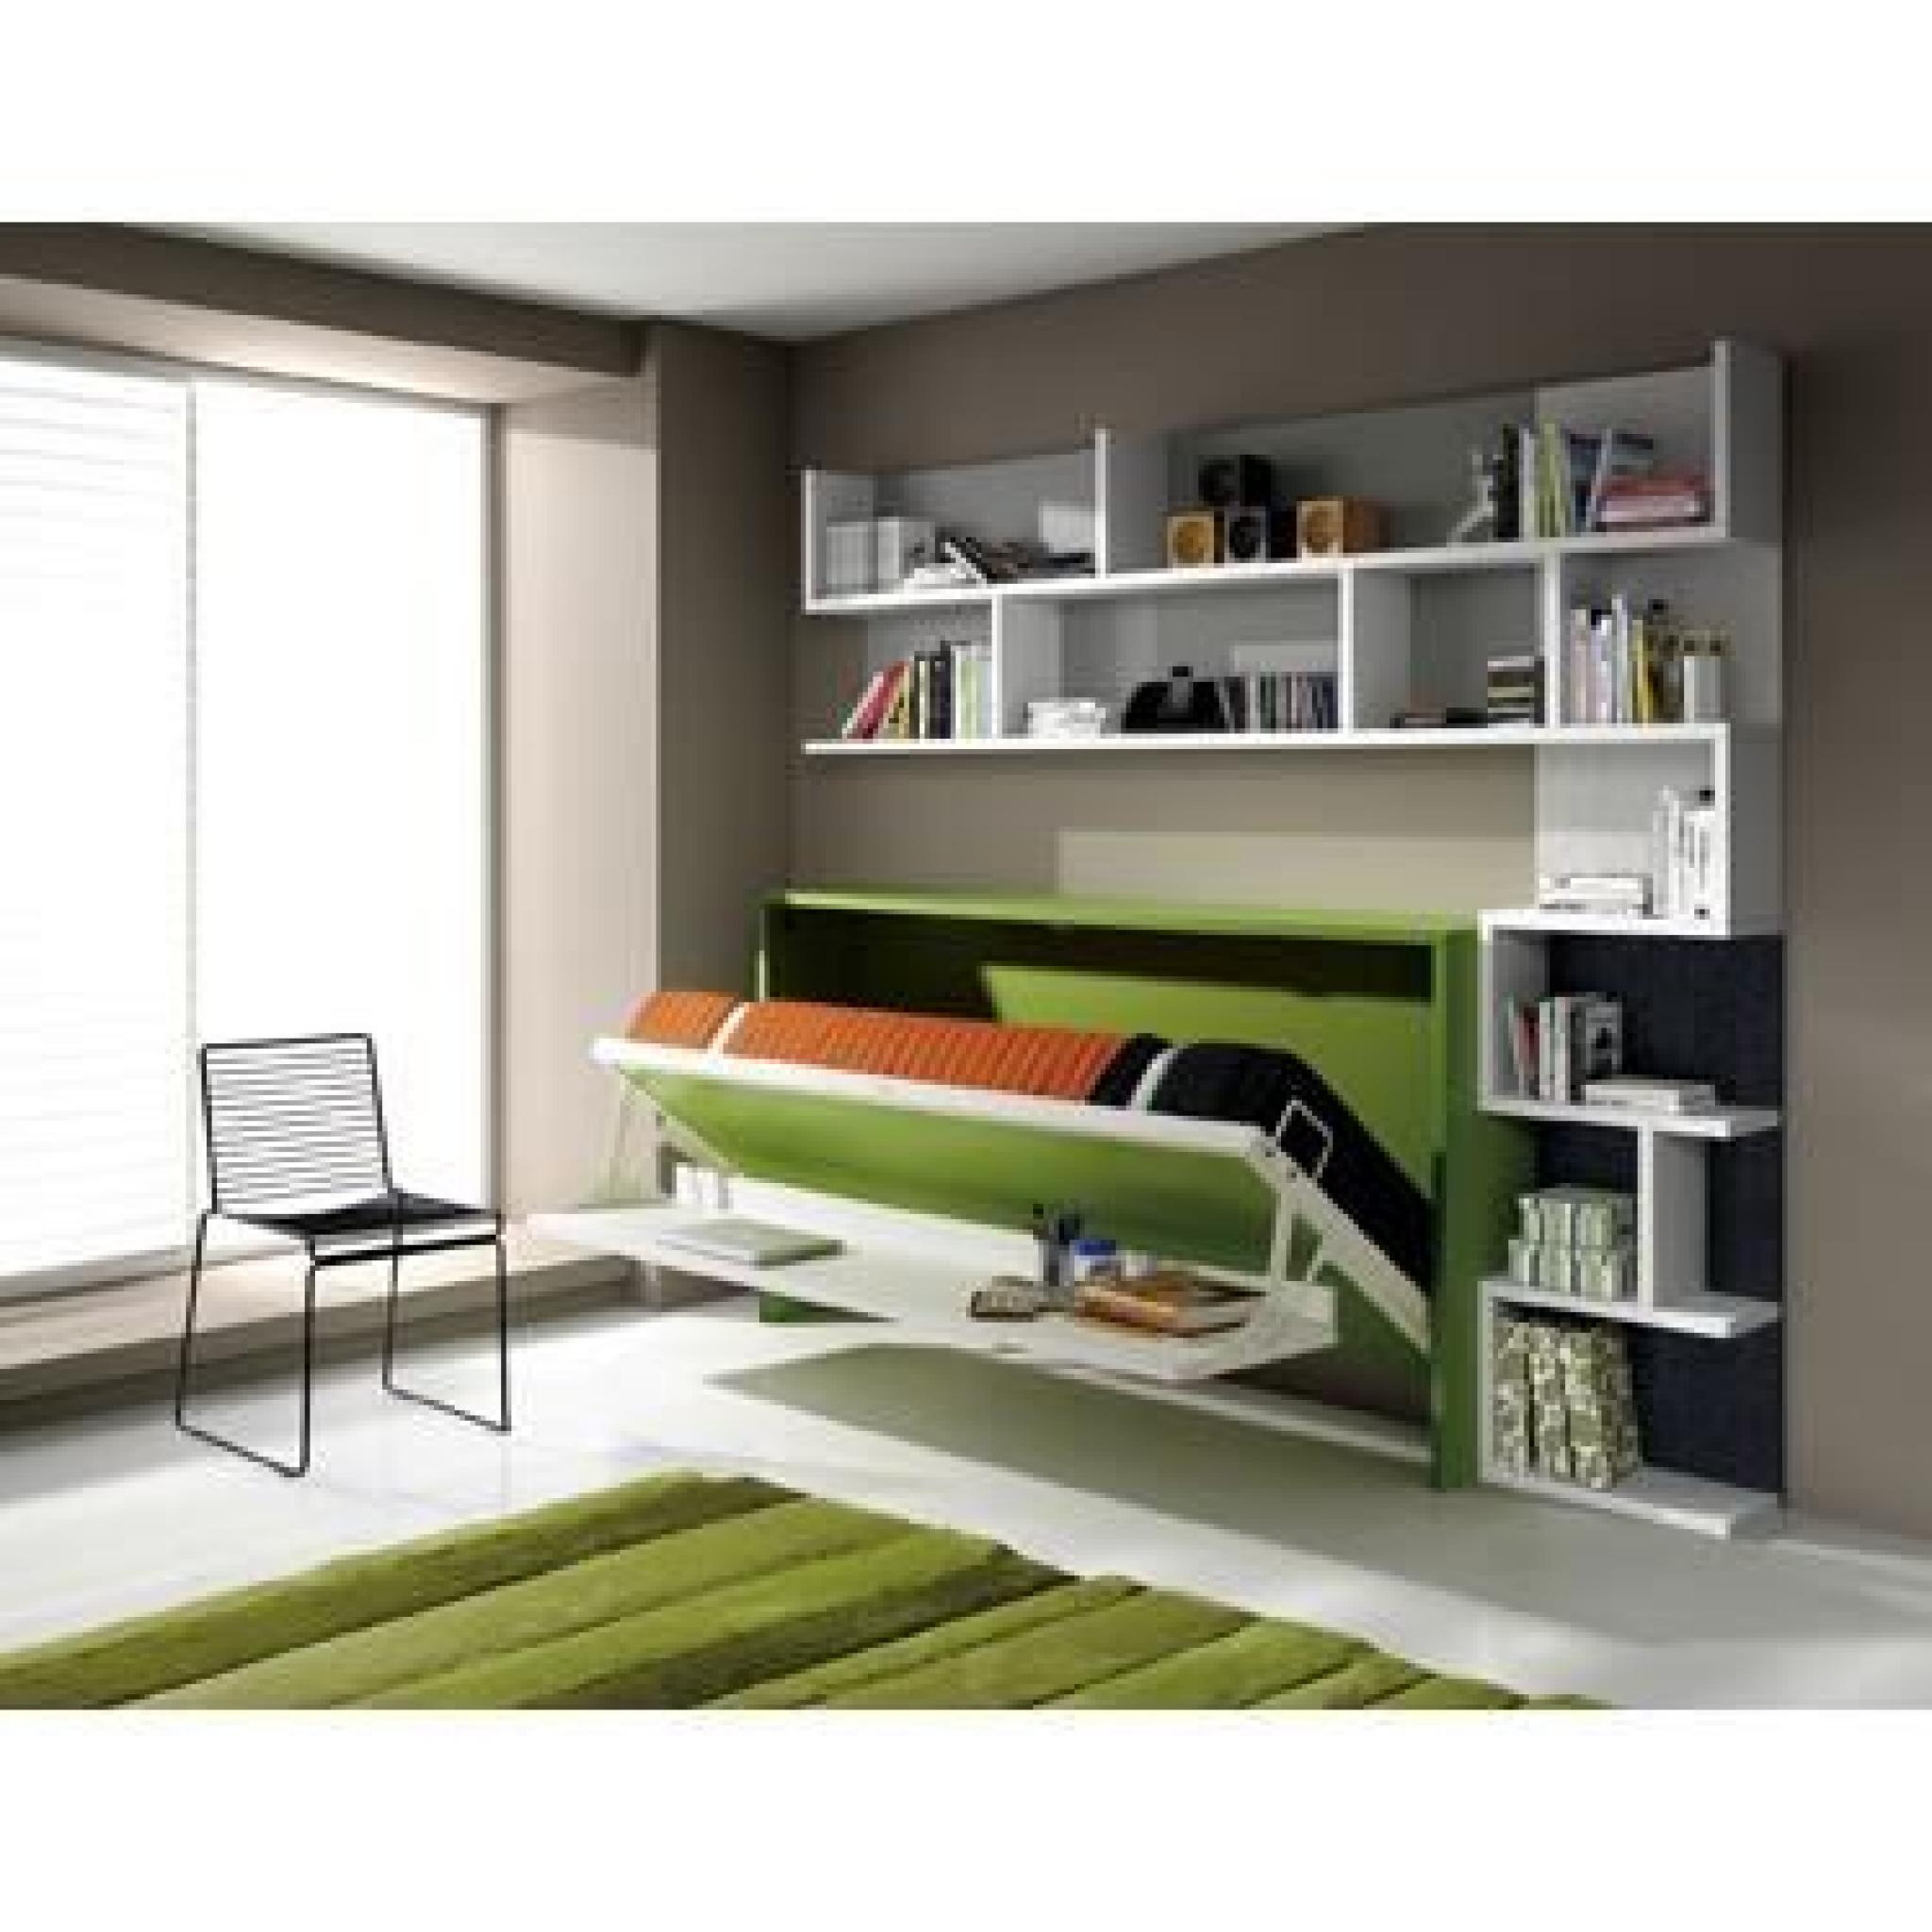 lit escamotable lat ral fleet 90x190cm avec bureau achat vente lit escamotable pas cher. Black Bedroom Furniture Sets. Home Design Ideas